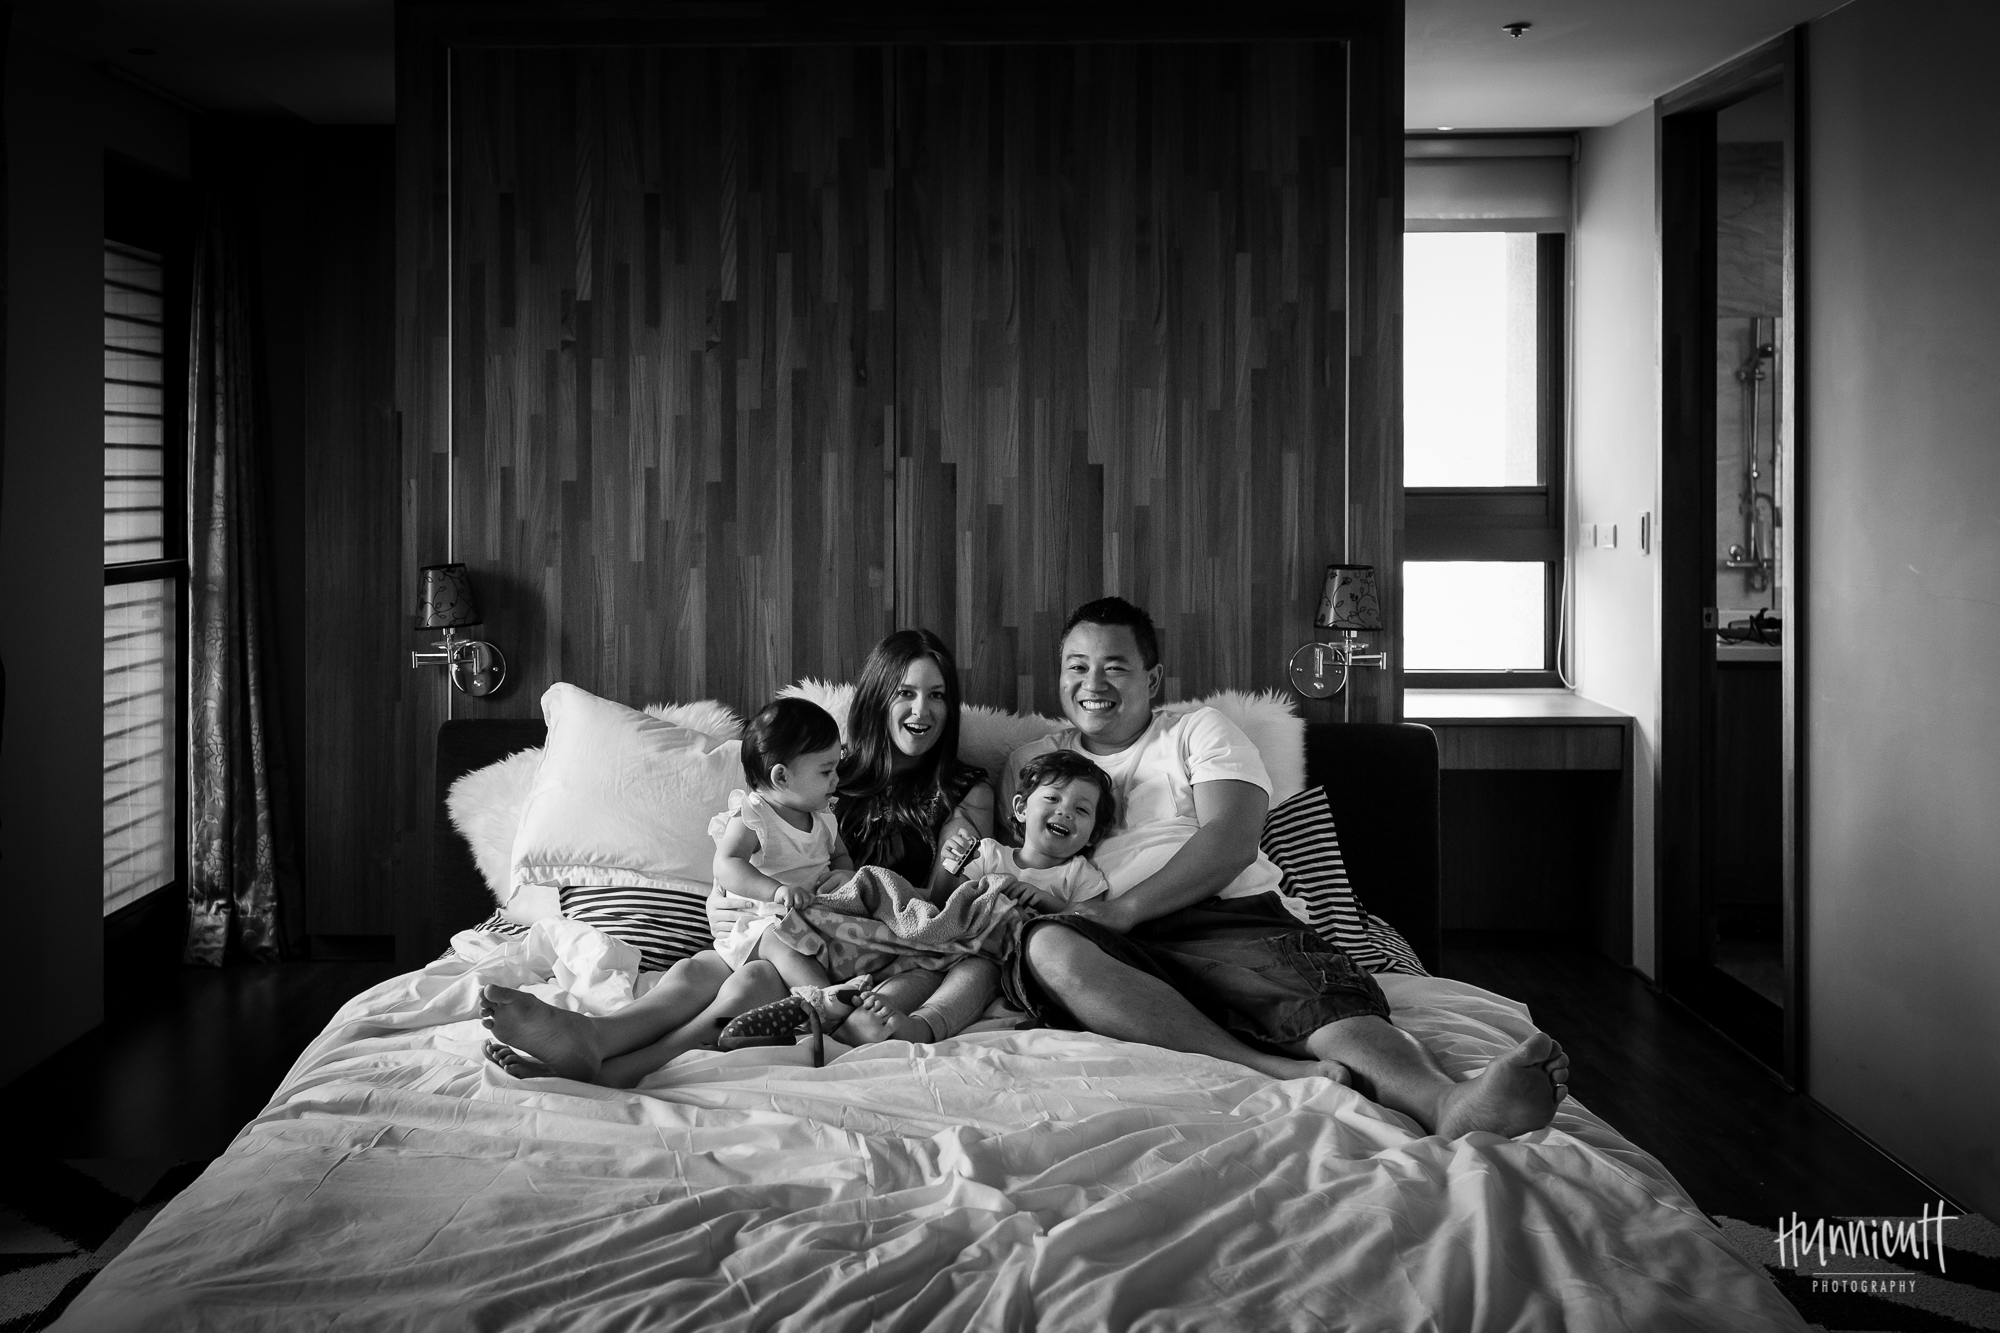 Family-Indoor-Lifestyle-Urban-Modern-HunnicuttPhotography-RebeccaHunnicuttFarren-NaturalLight-26